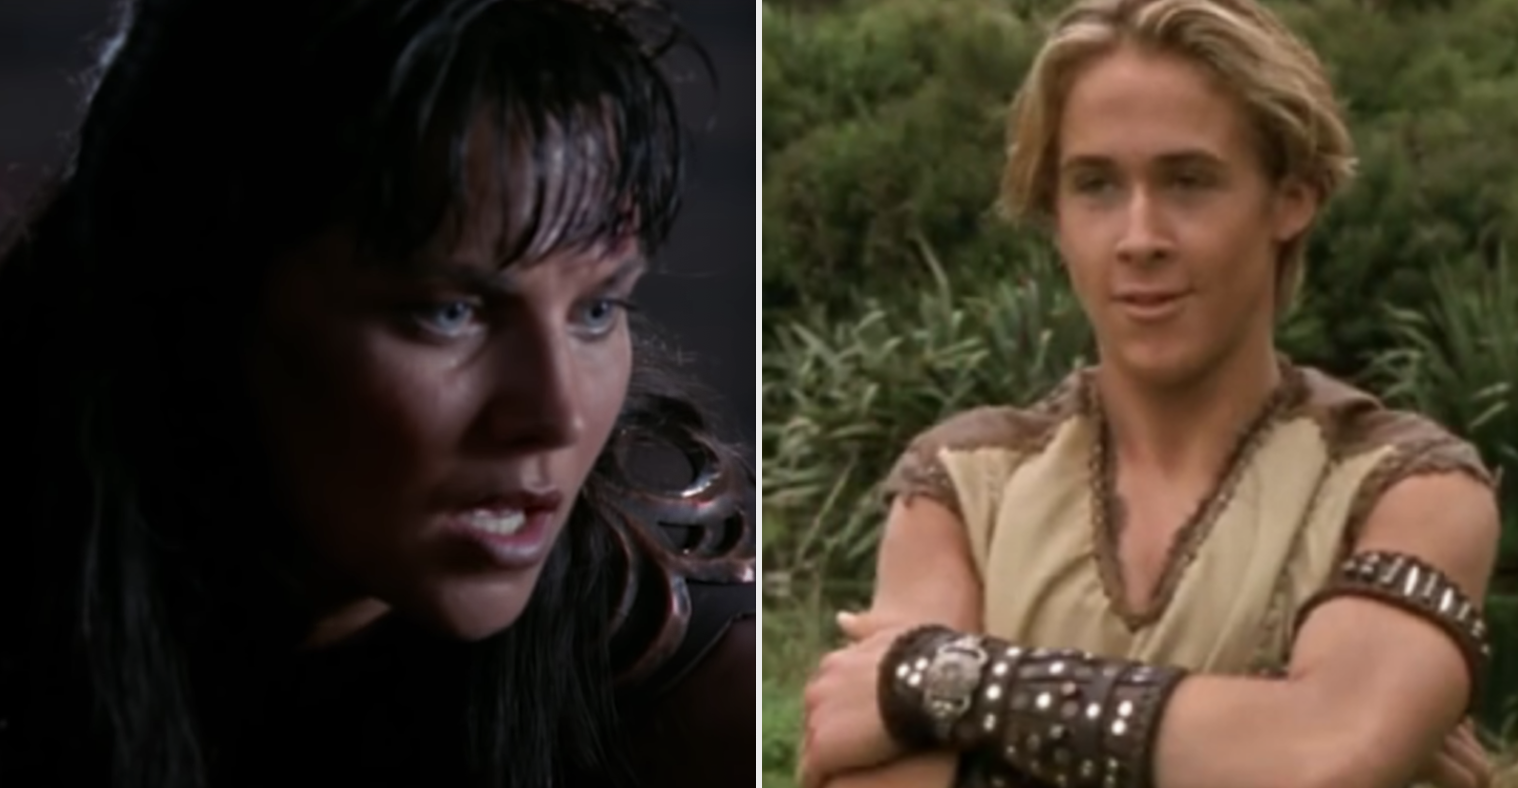 Lucy Lawless as Xena and Ryan Gosling as a young Hercules